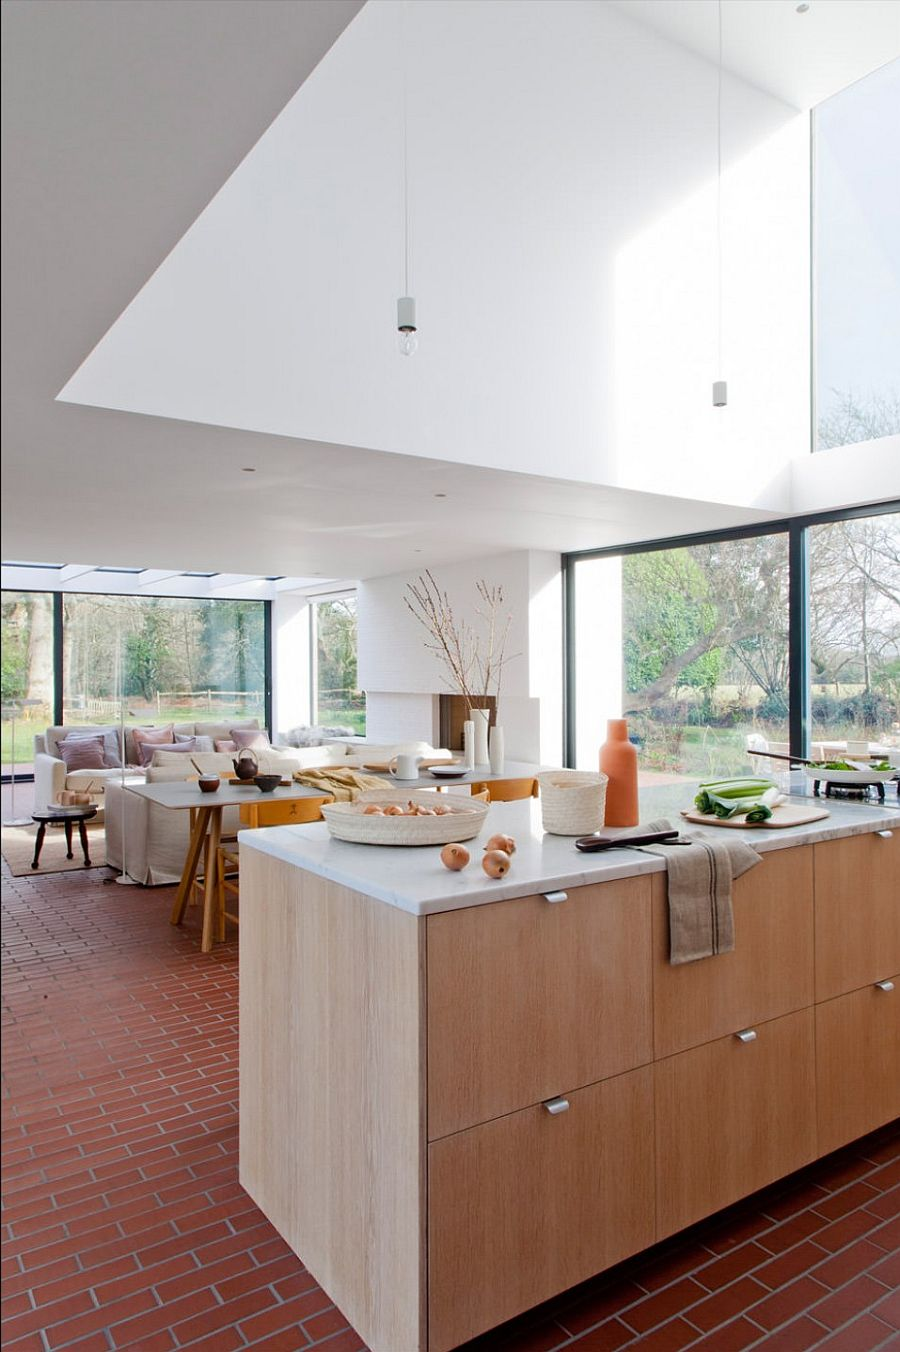 Living area feels a lot more spacious as one approaches the modern kitchen